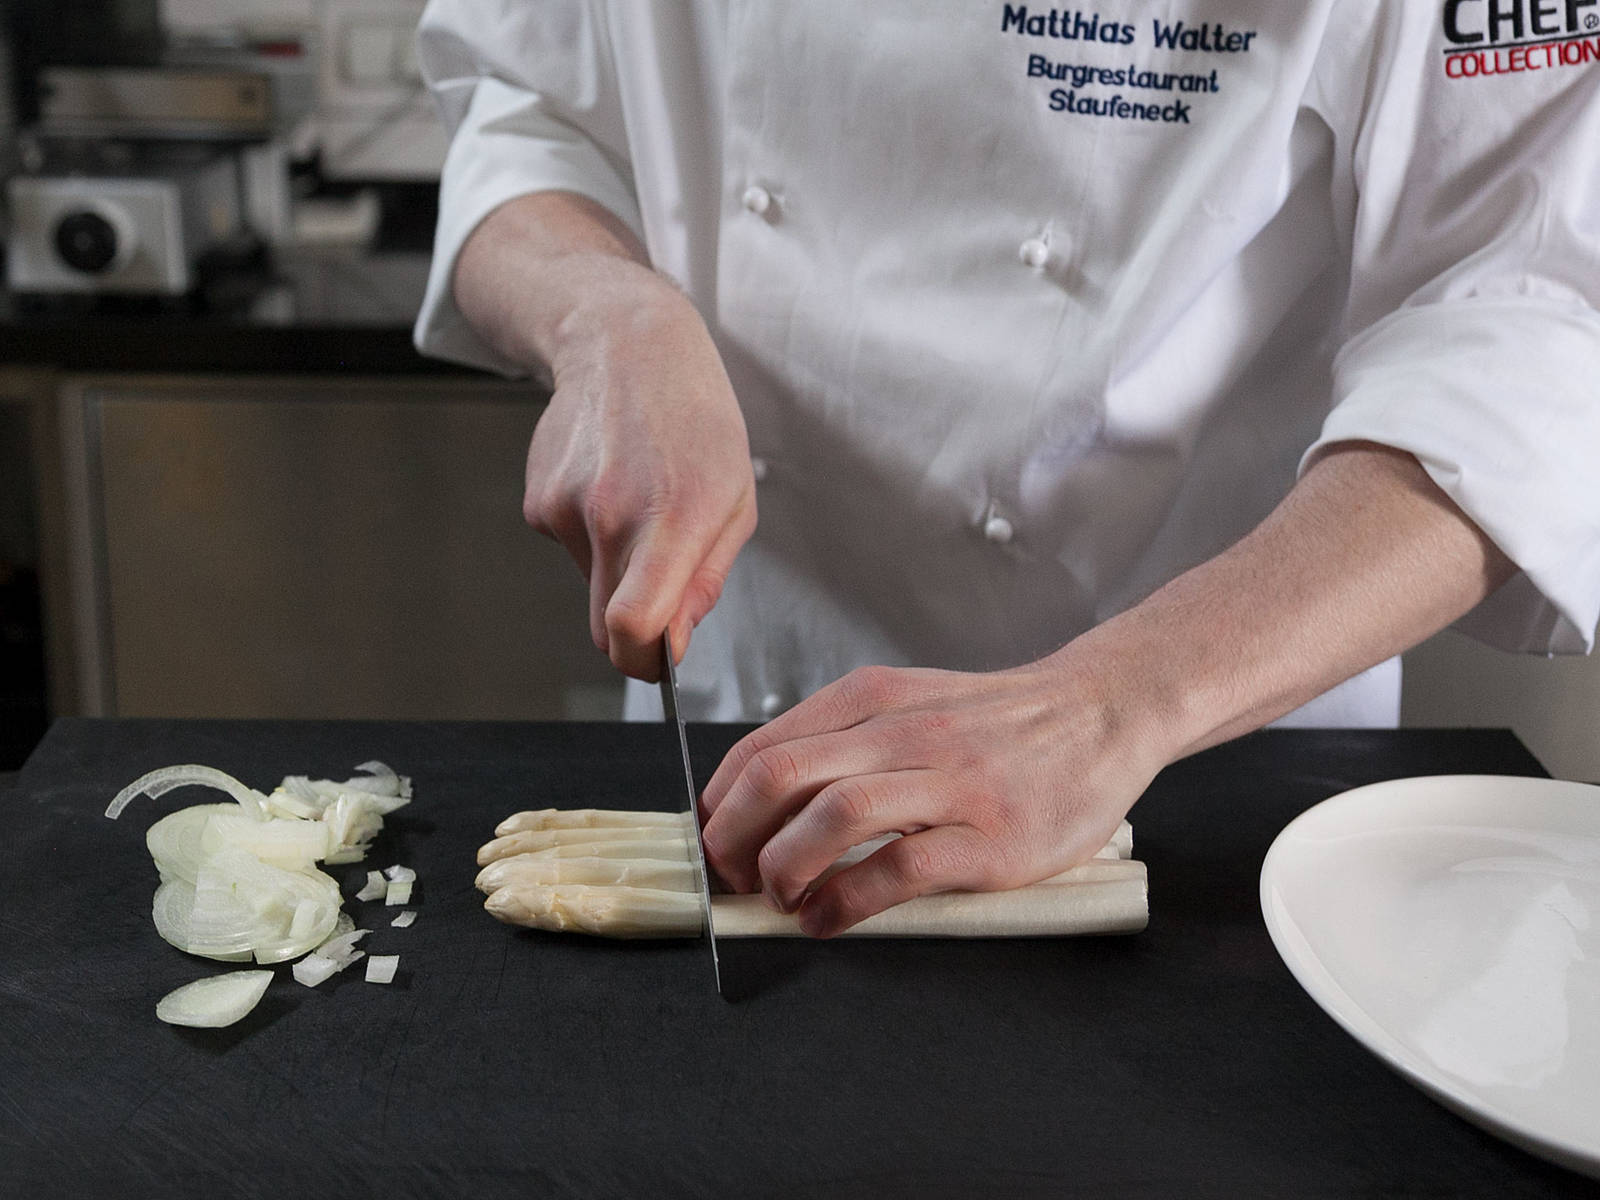 Peel and finely chop onion. Peel white asparagus from tip to stem. Trim ends. Cut asparagus tips and set aside. Finely slice stem. Only peel the bottom third of green asparagus. Trim ends and cut tips. Cut remaining asparagus into equal-sized pieces. Cover white and green asparagus tips, as well as green asparagus pieces, and set aside.